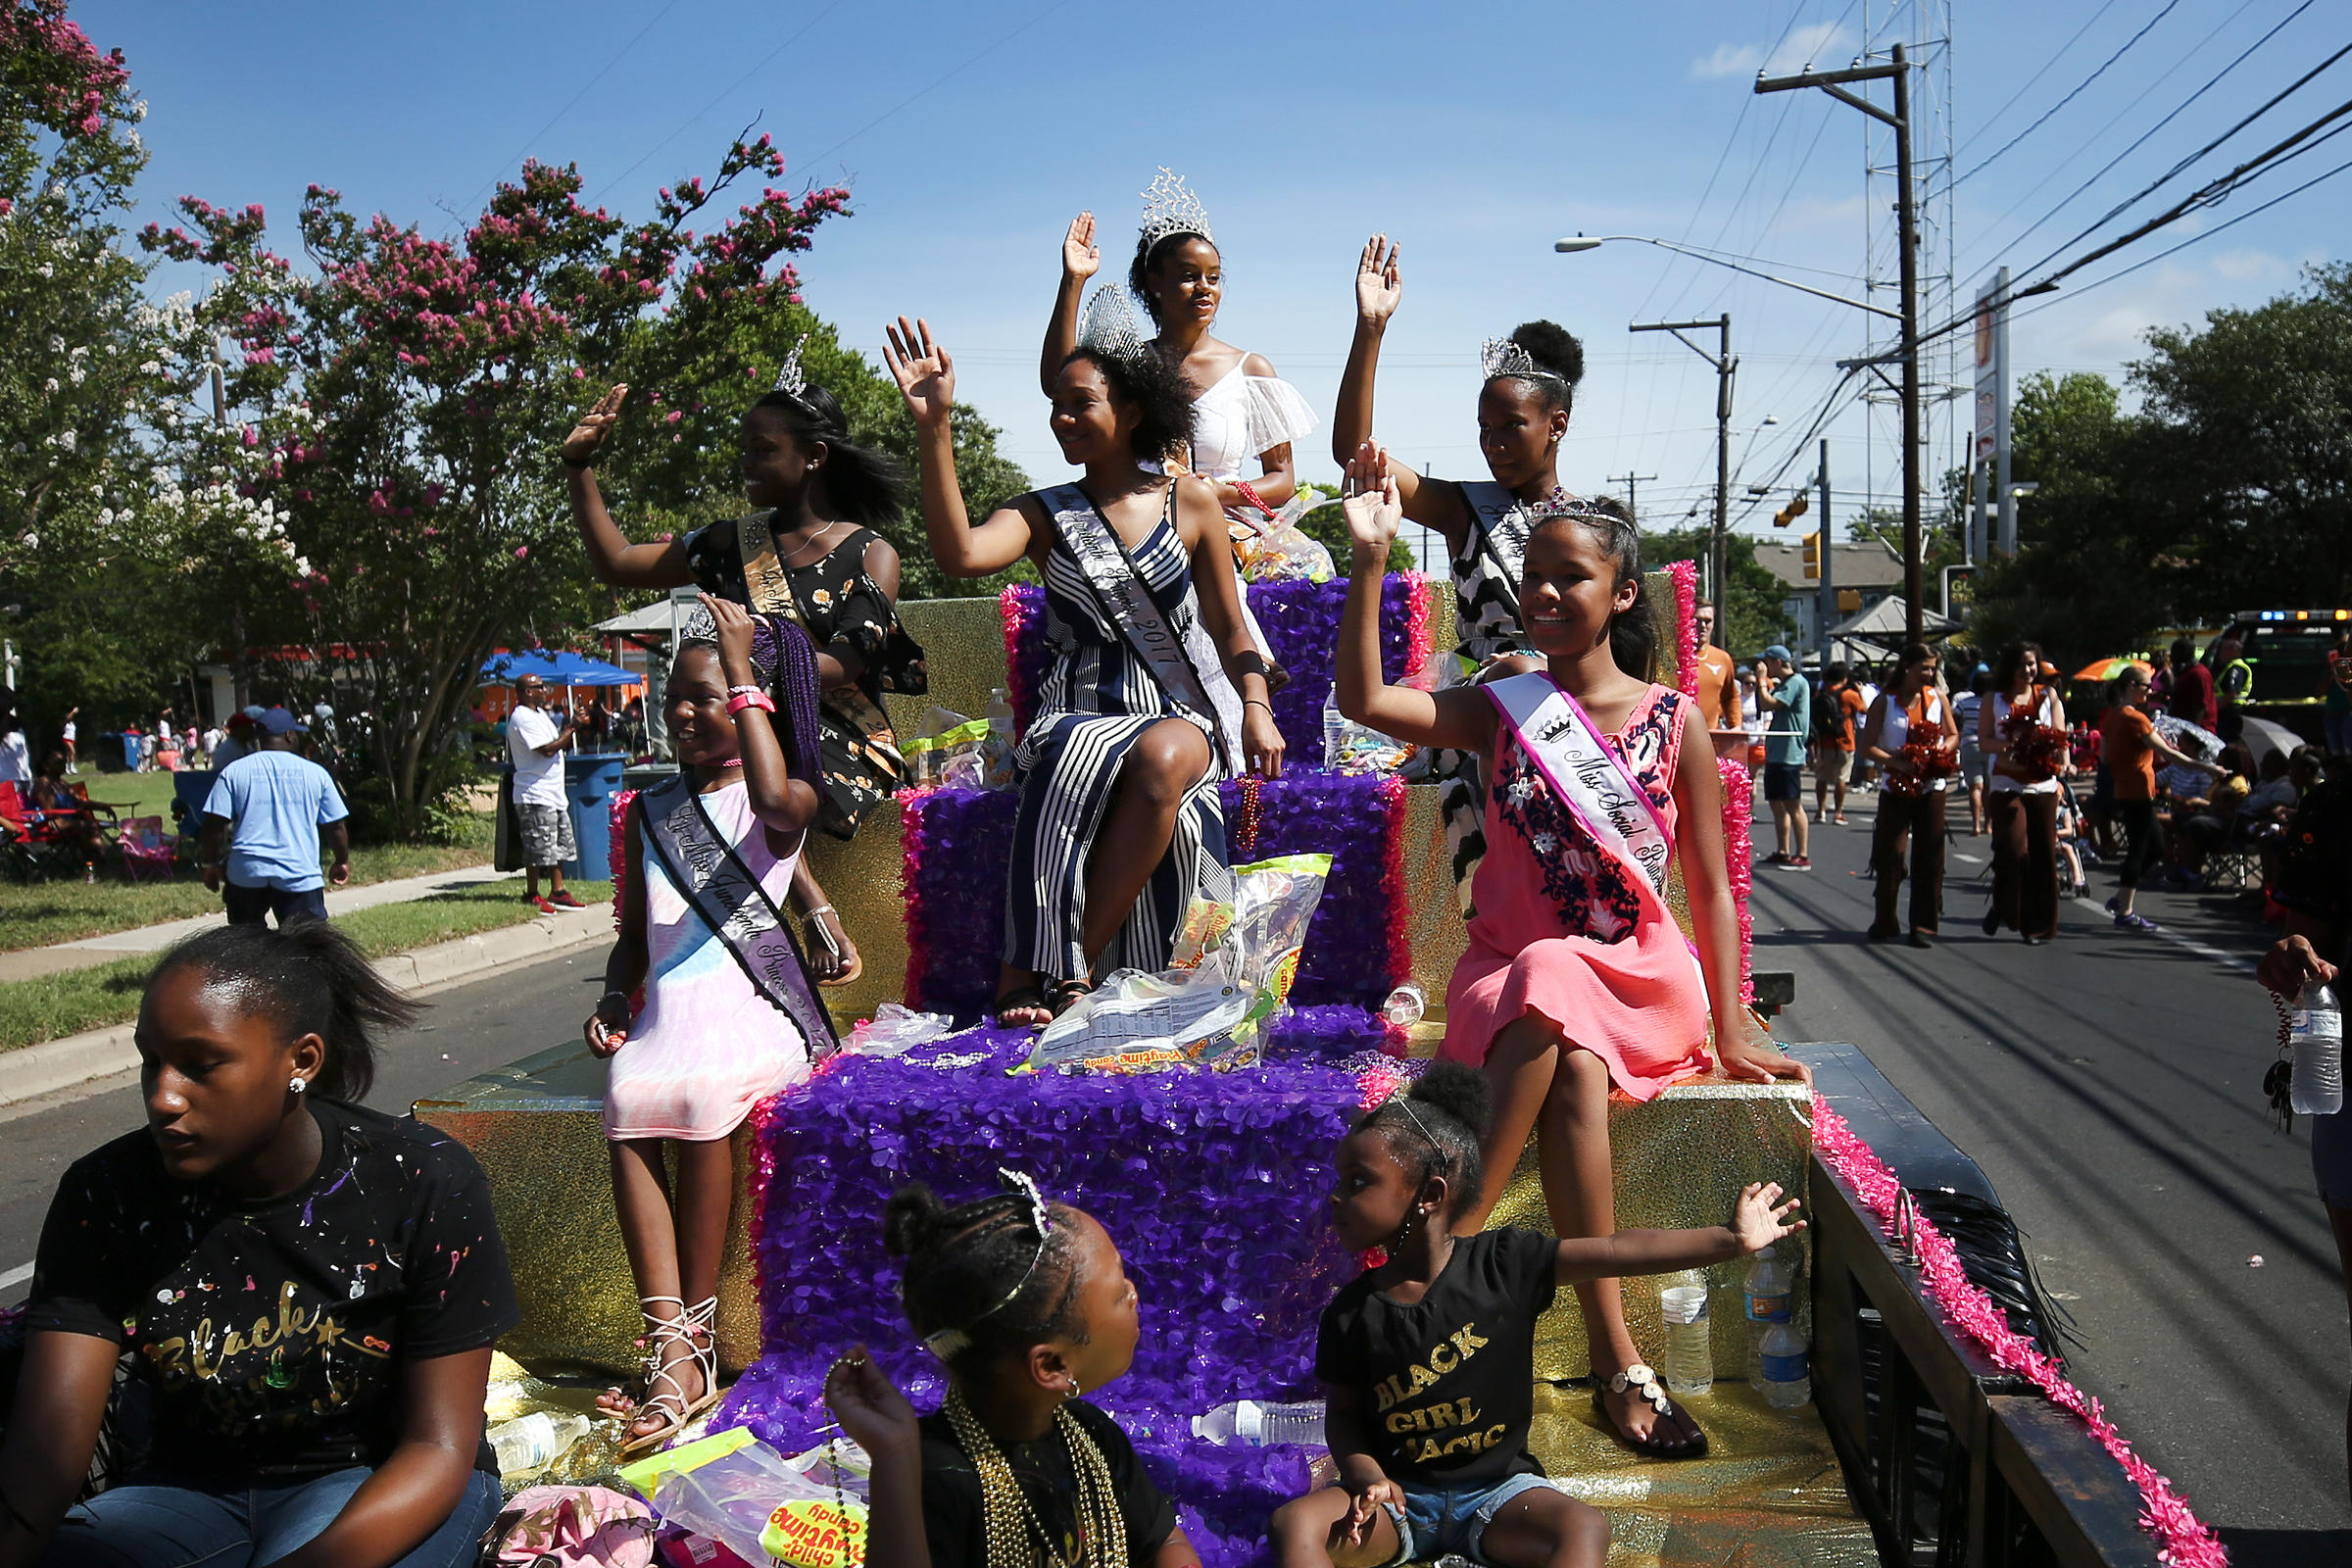 16th Annual Juneteenth celebration kicks off in Elmira